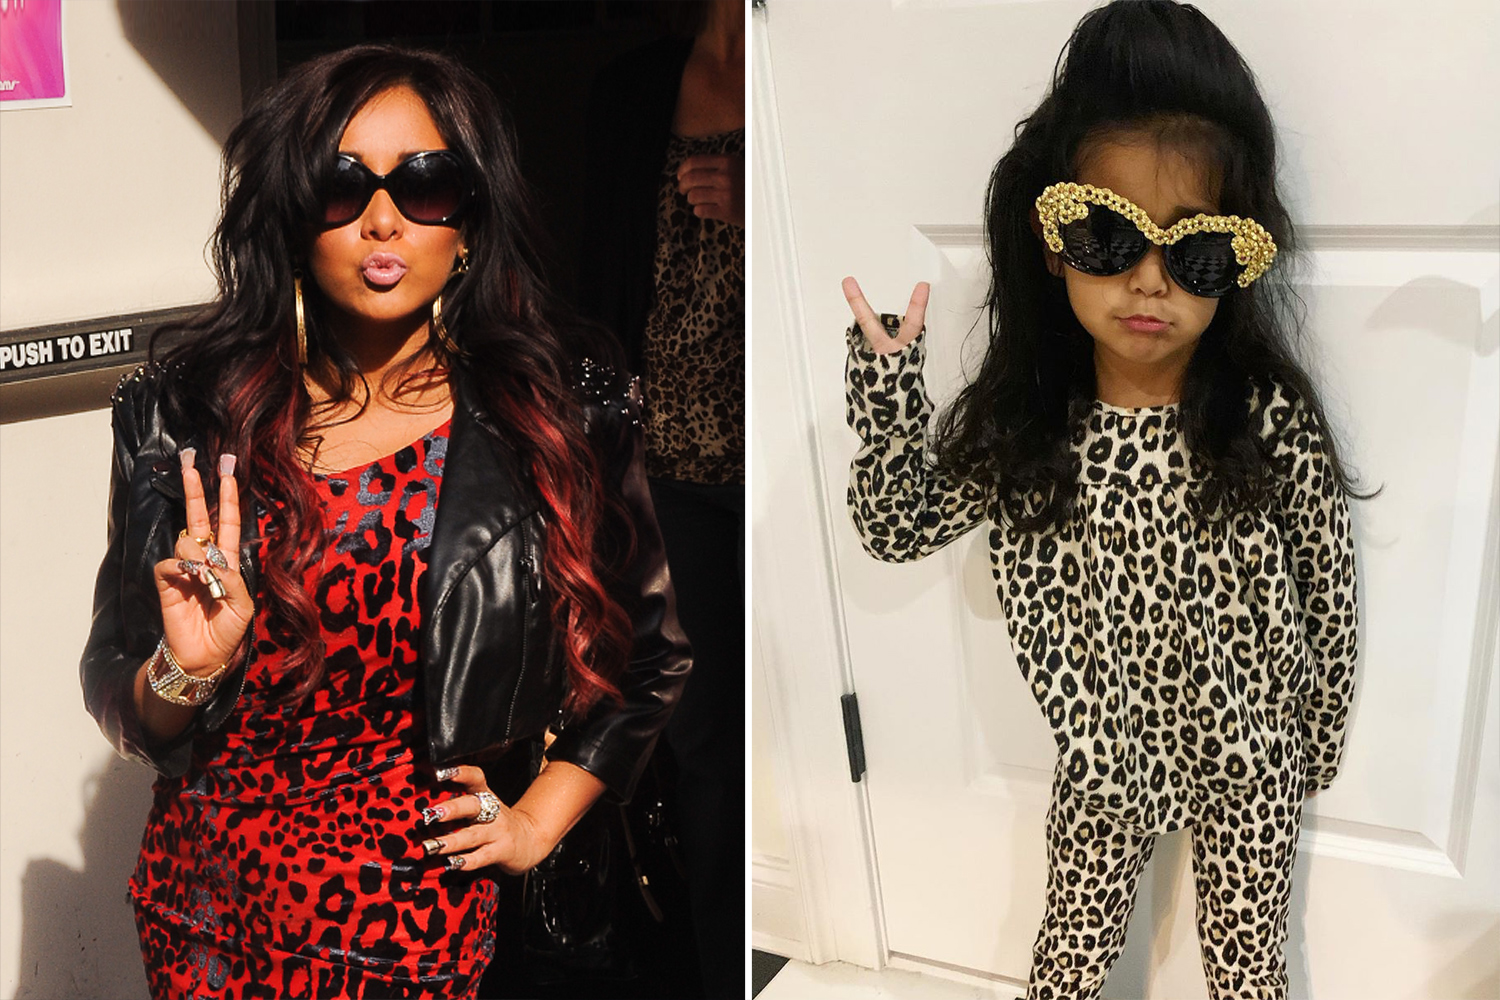 Snooki's daughter as Jersey Shore